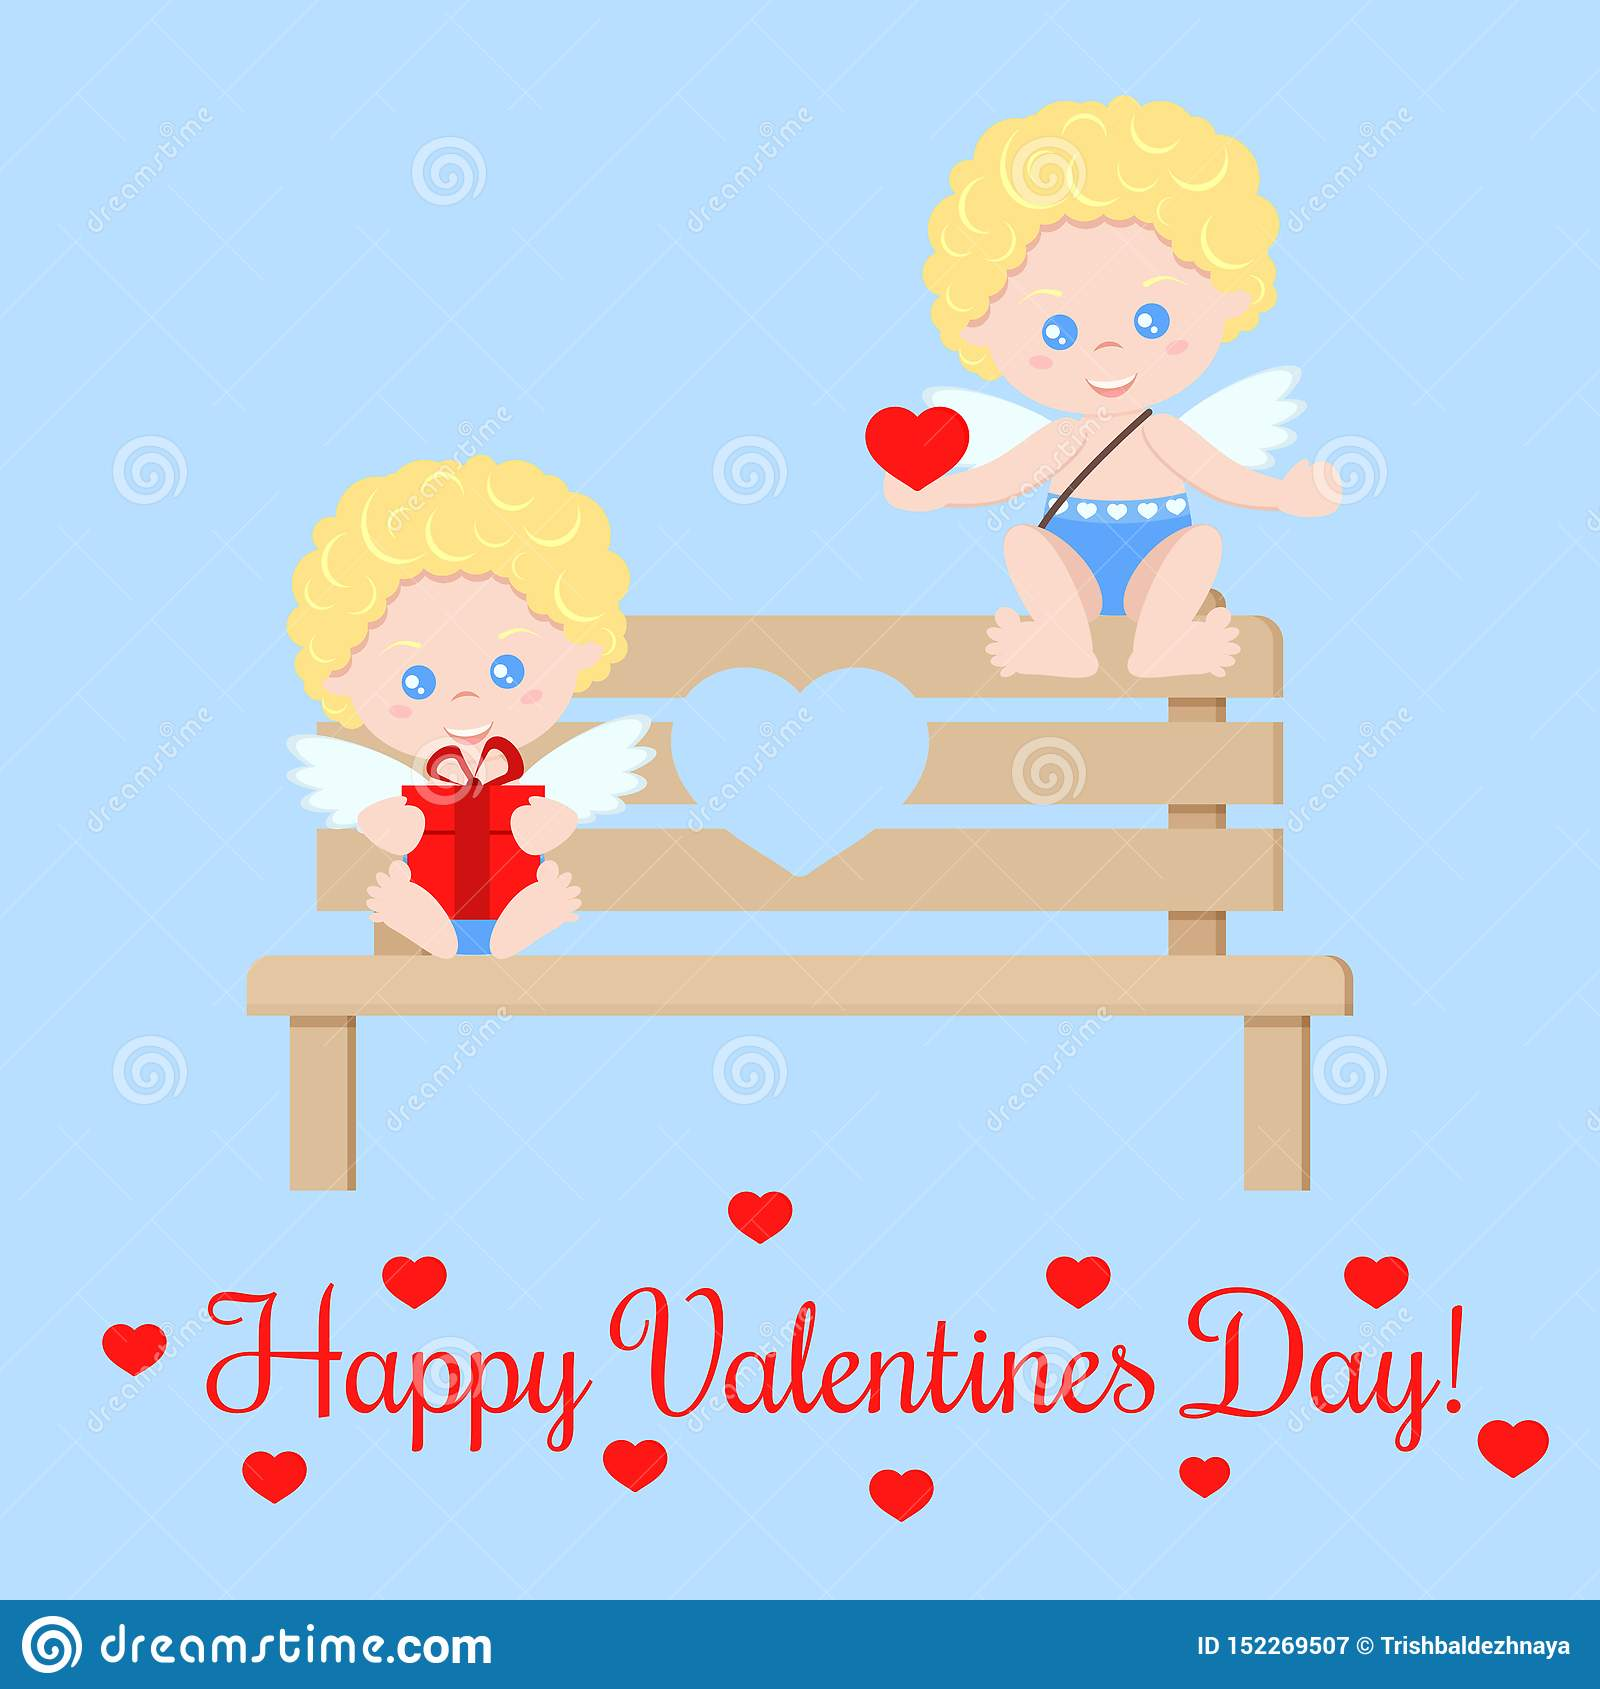 Greeting card with cute isolated romant pair of cupids with a heart and a gift